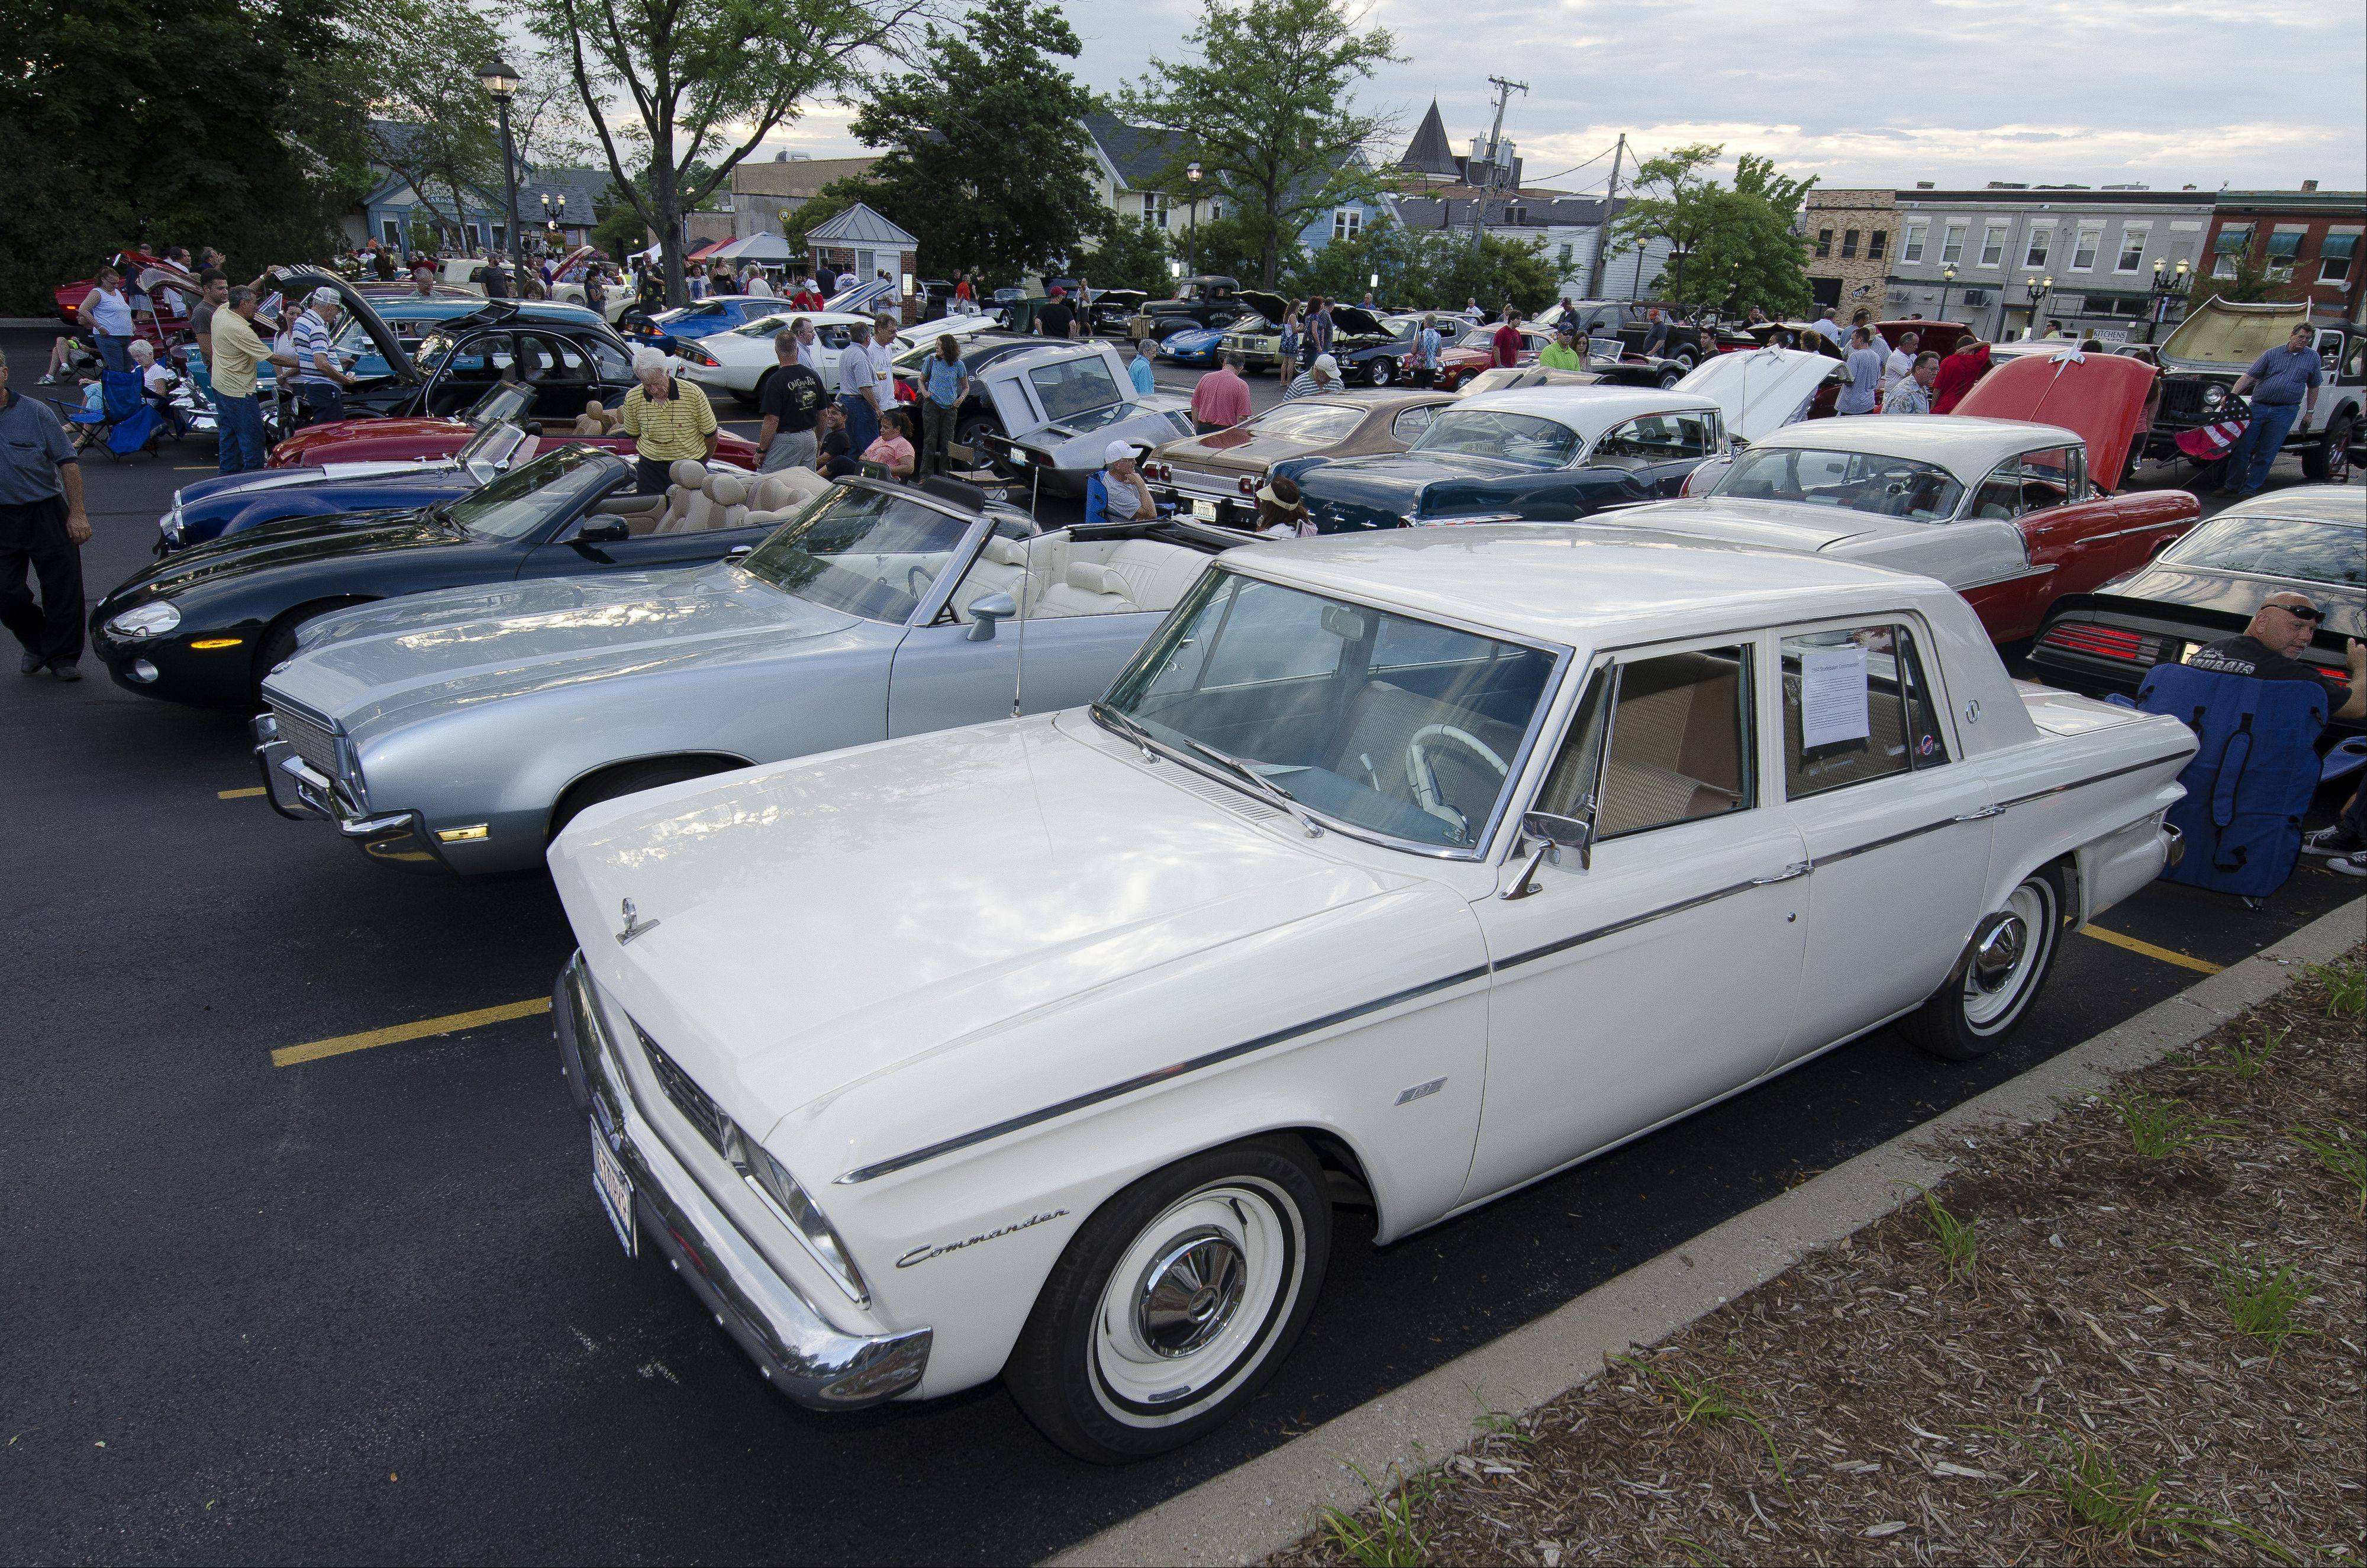 Classics fill a bank parking lot in downtown Barrington during a recent Thursday cruise night.